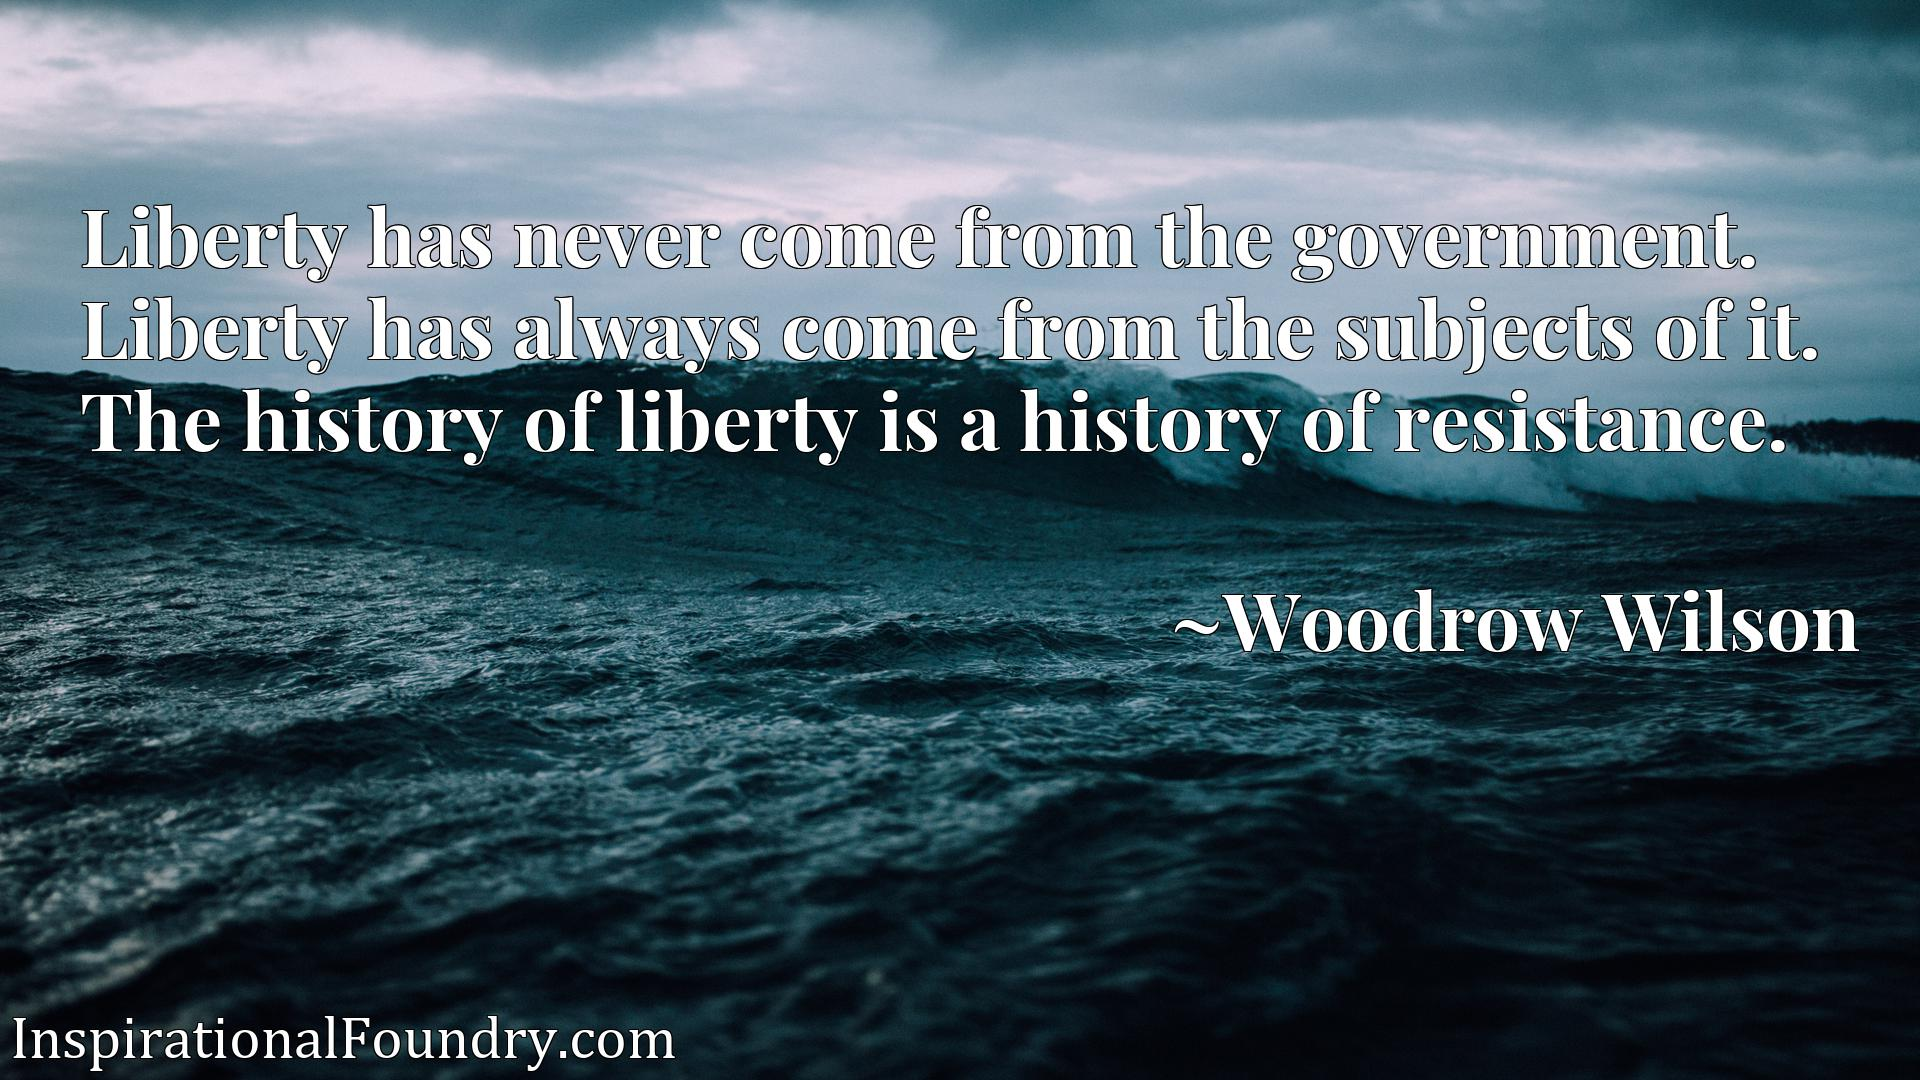 Quote Picture :Liberty has never come from the government. Liberty has always come from the subjects of it. The history of liberty is a history of resistance.